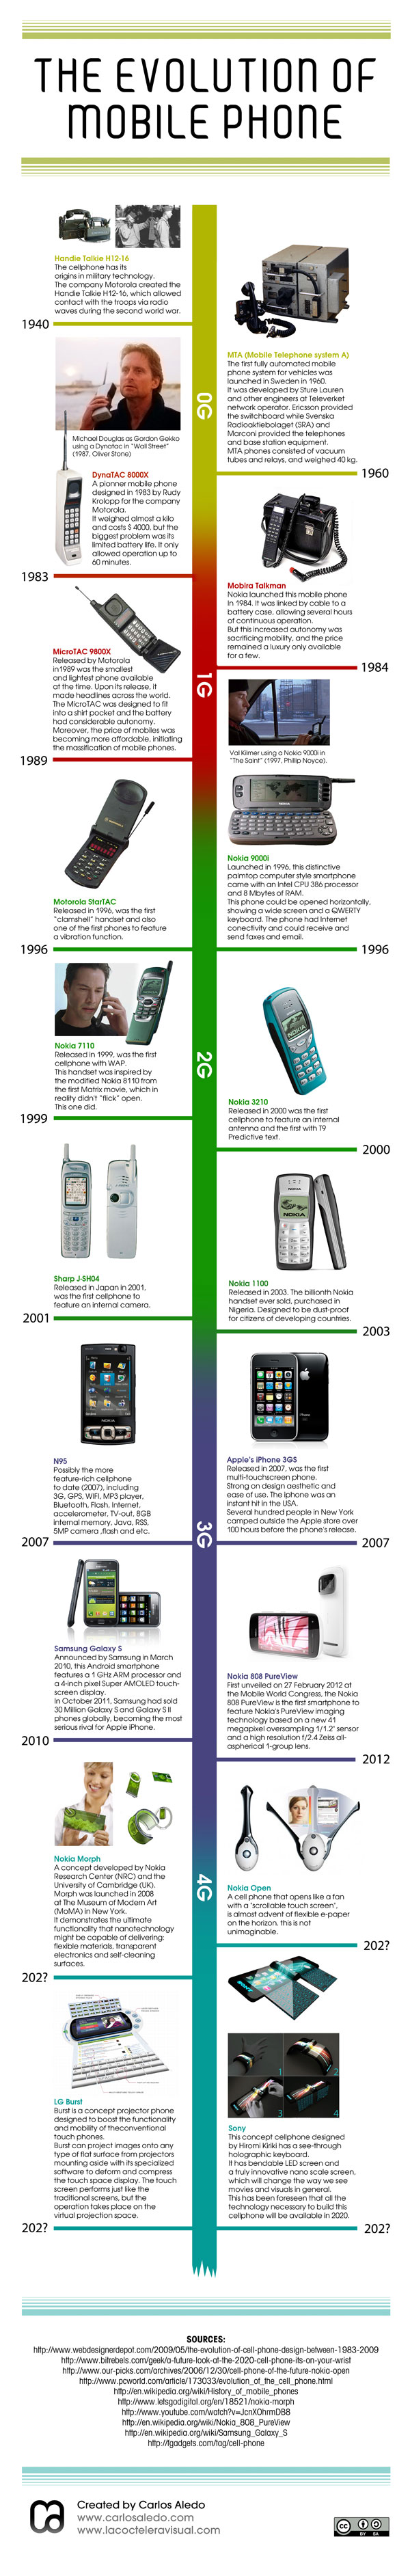 the-evolution-of-mobile-phone